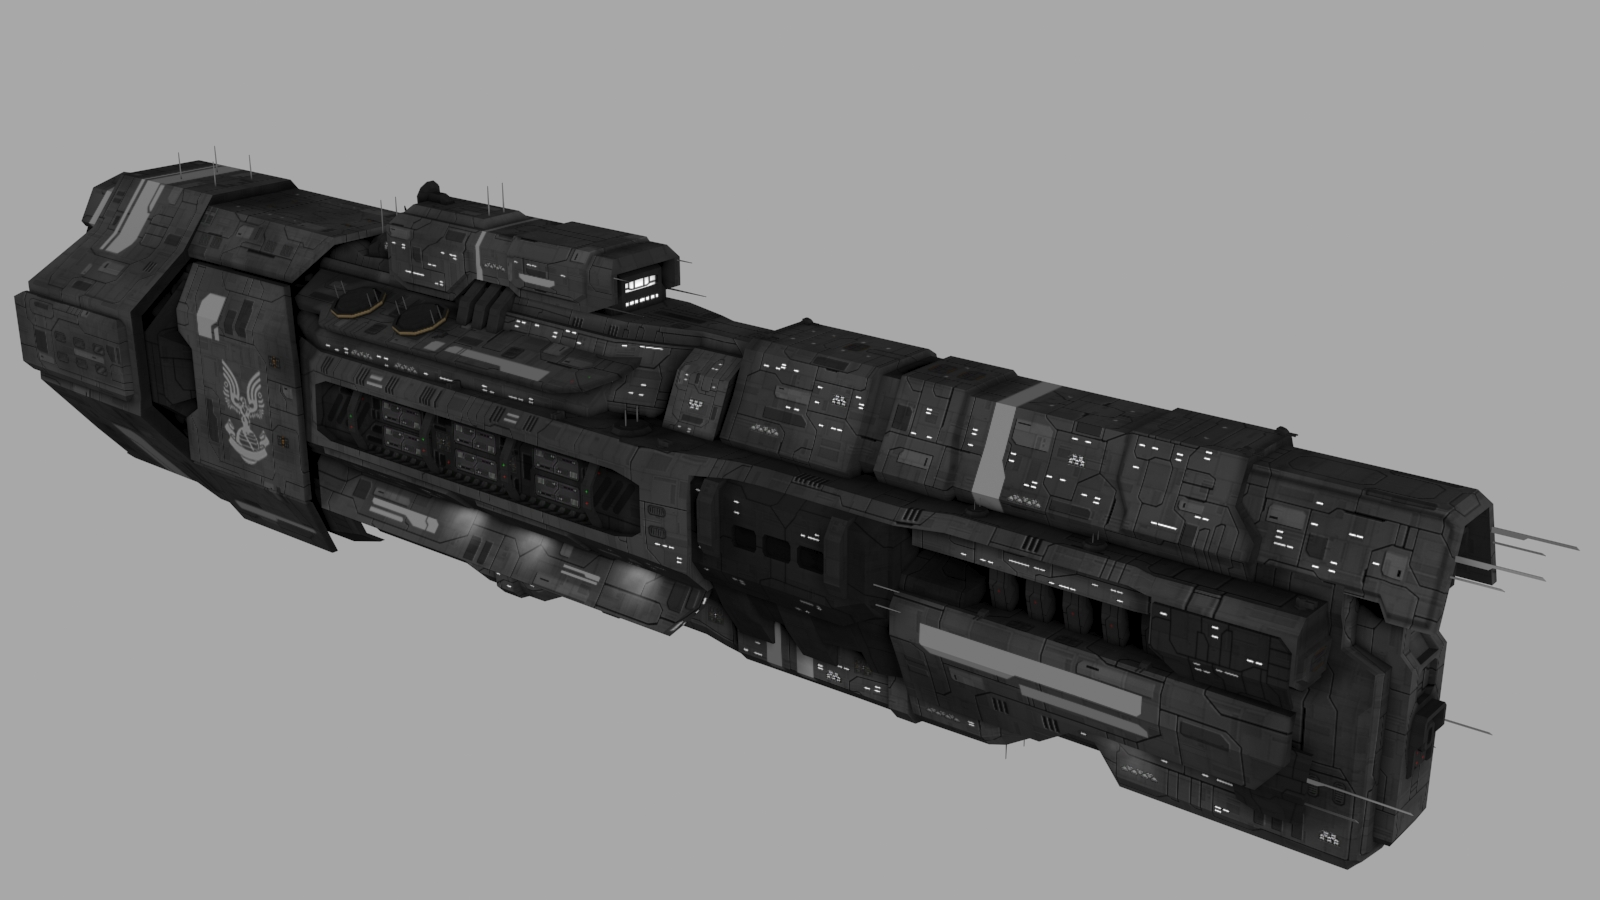 Damocles-class Heavy Carrier